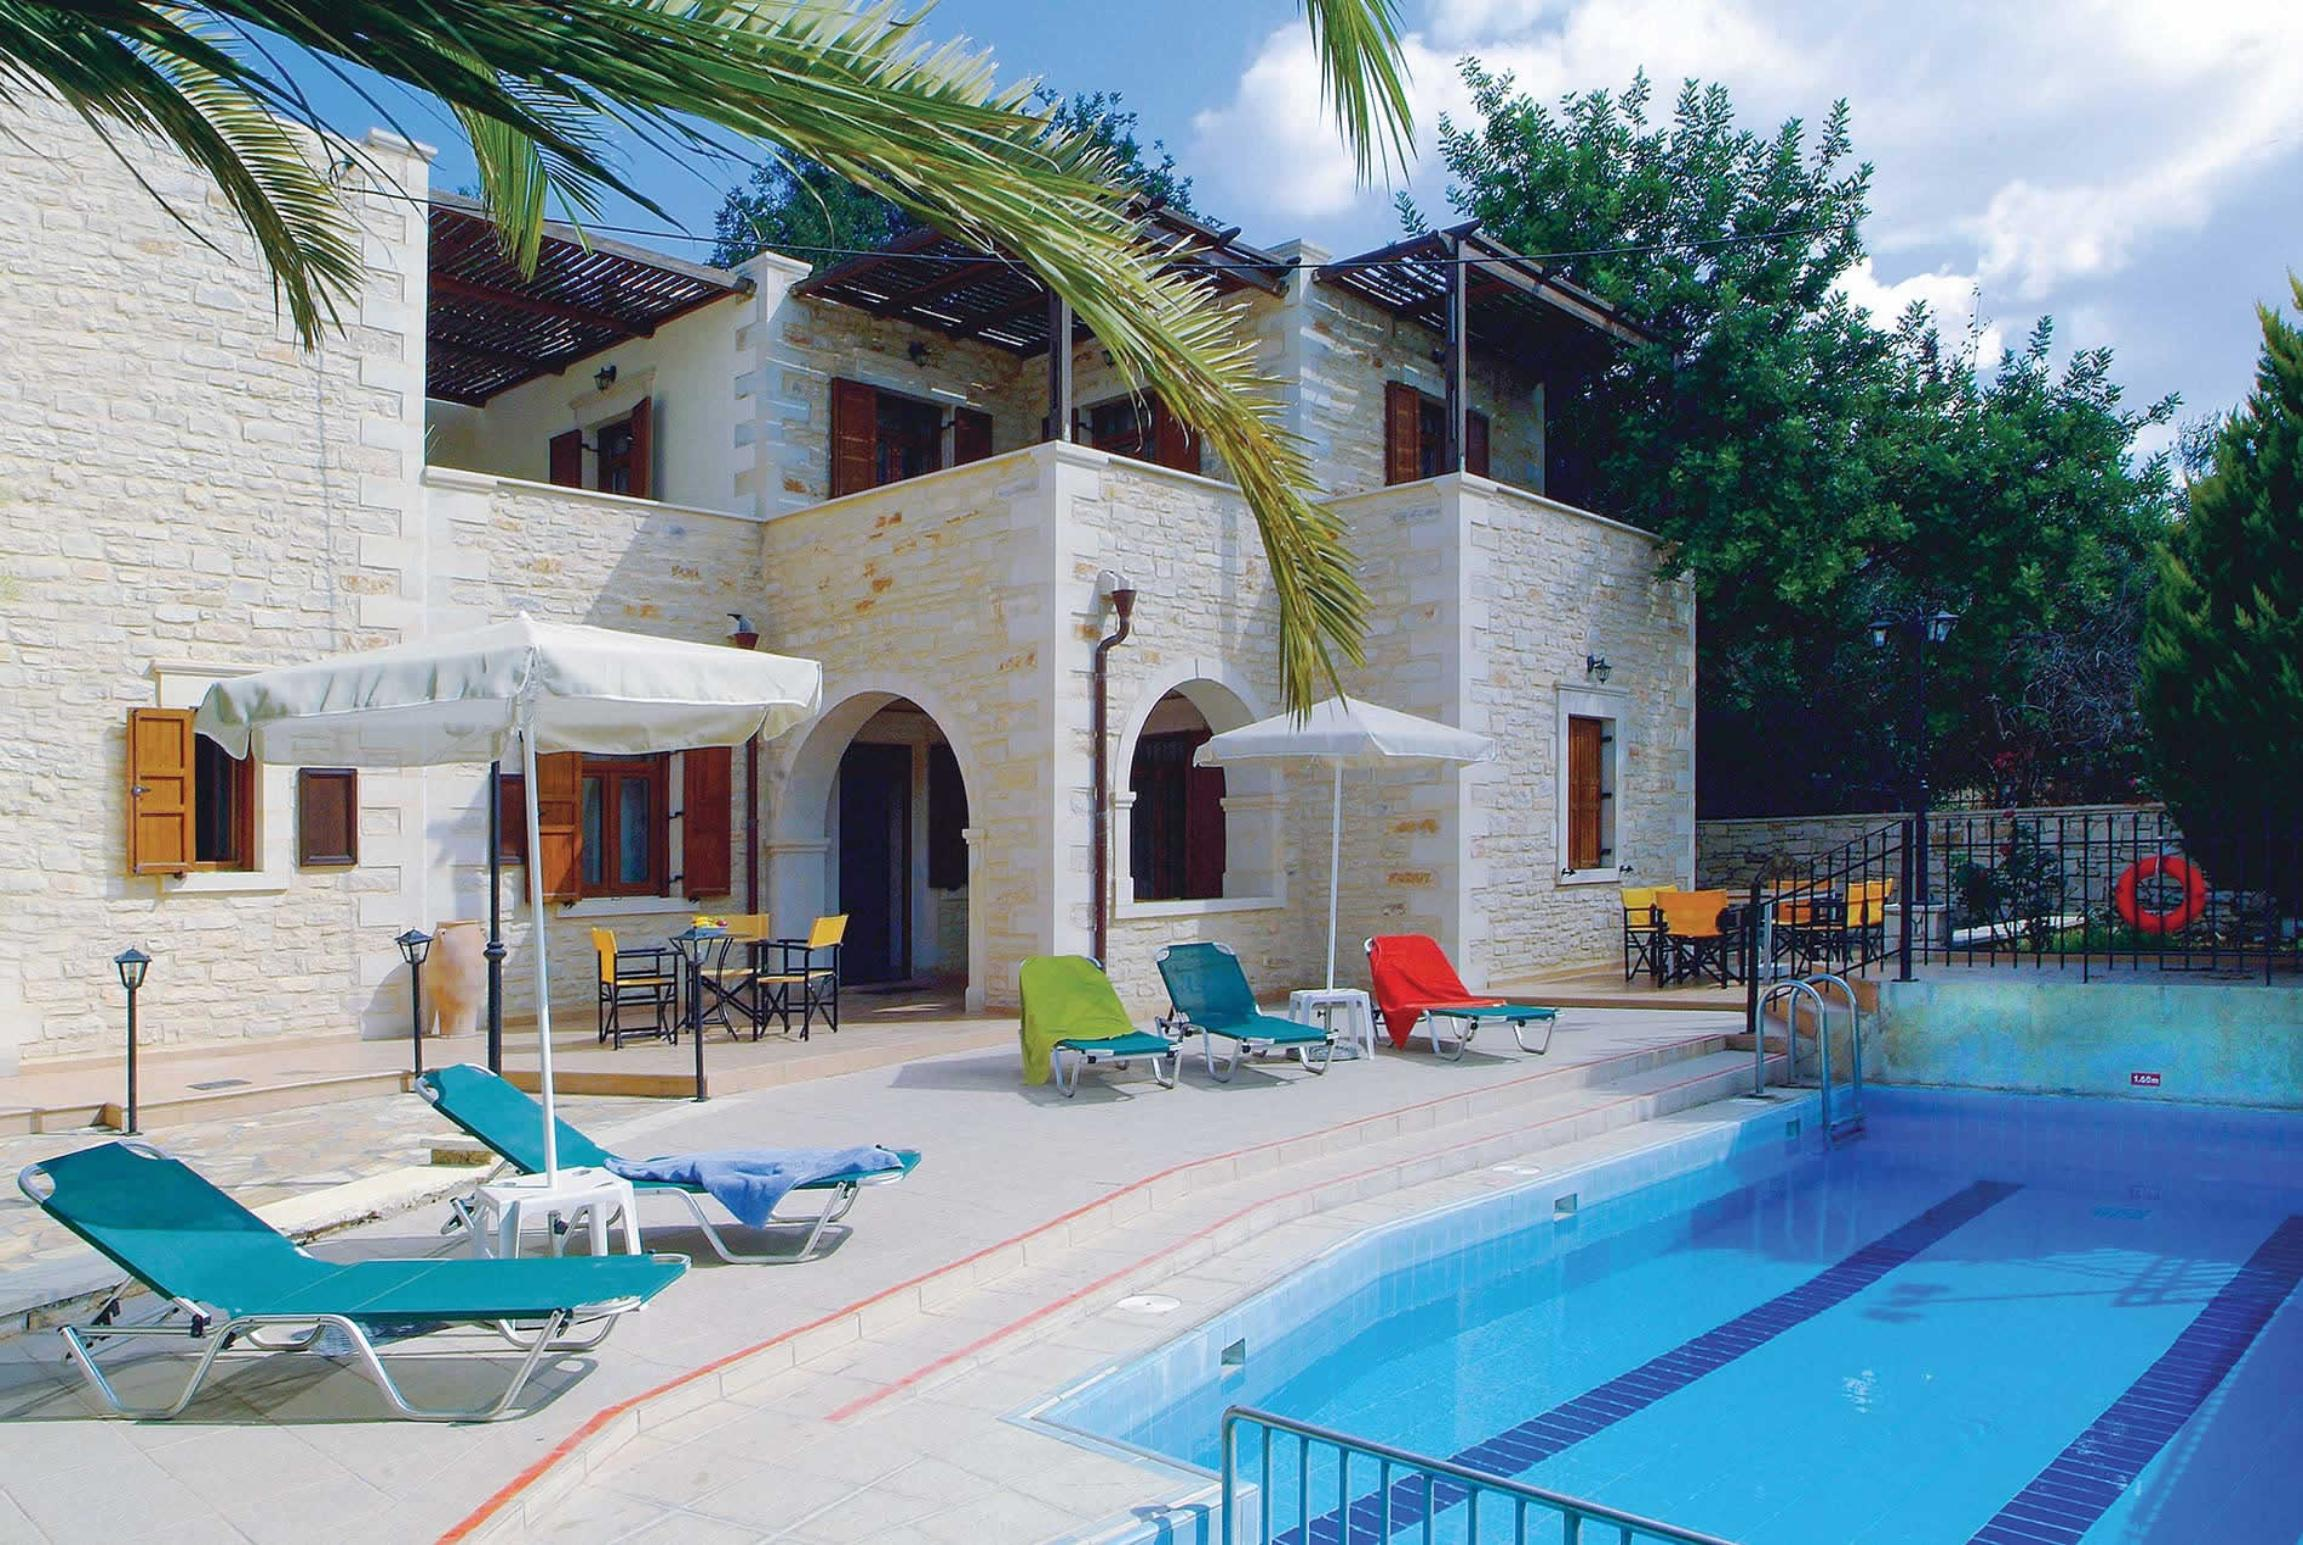 Read more about Markos Chara villa